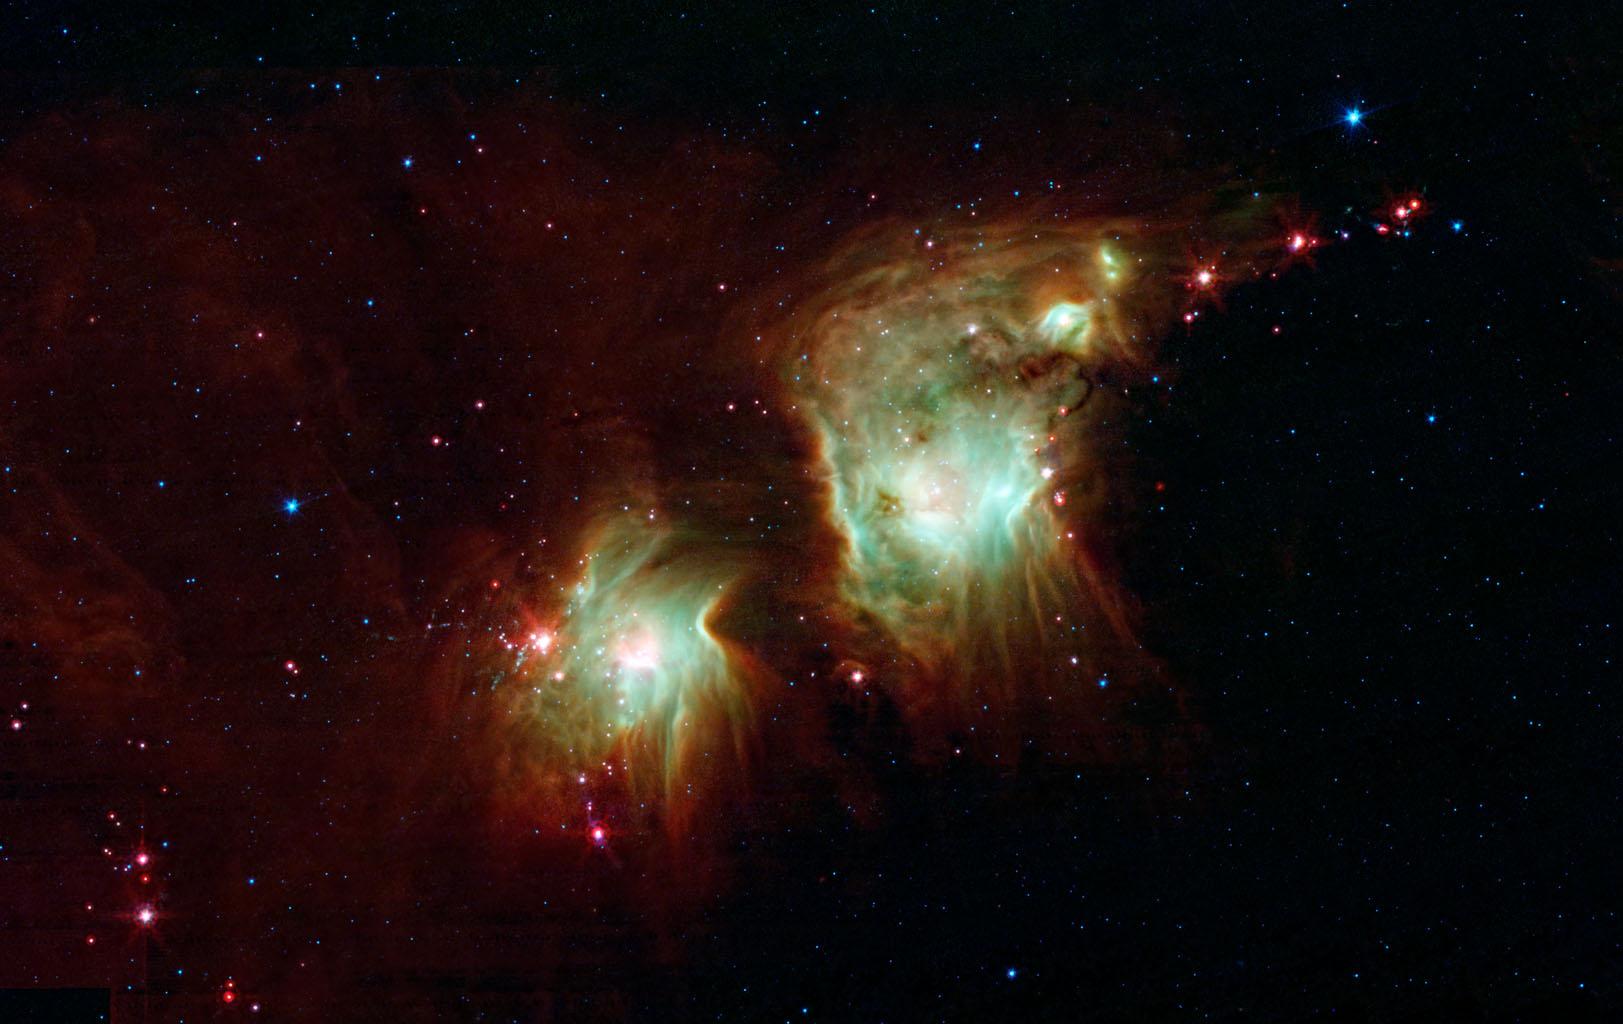 Space Images | Making a Spectacle of Star Formation in Orion